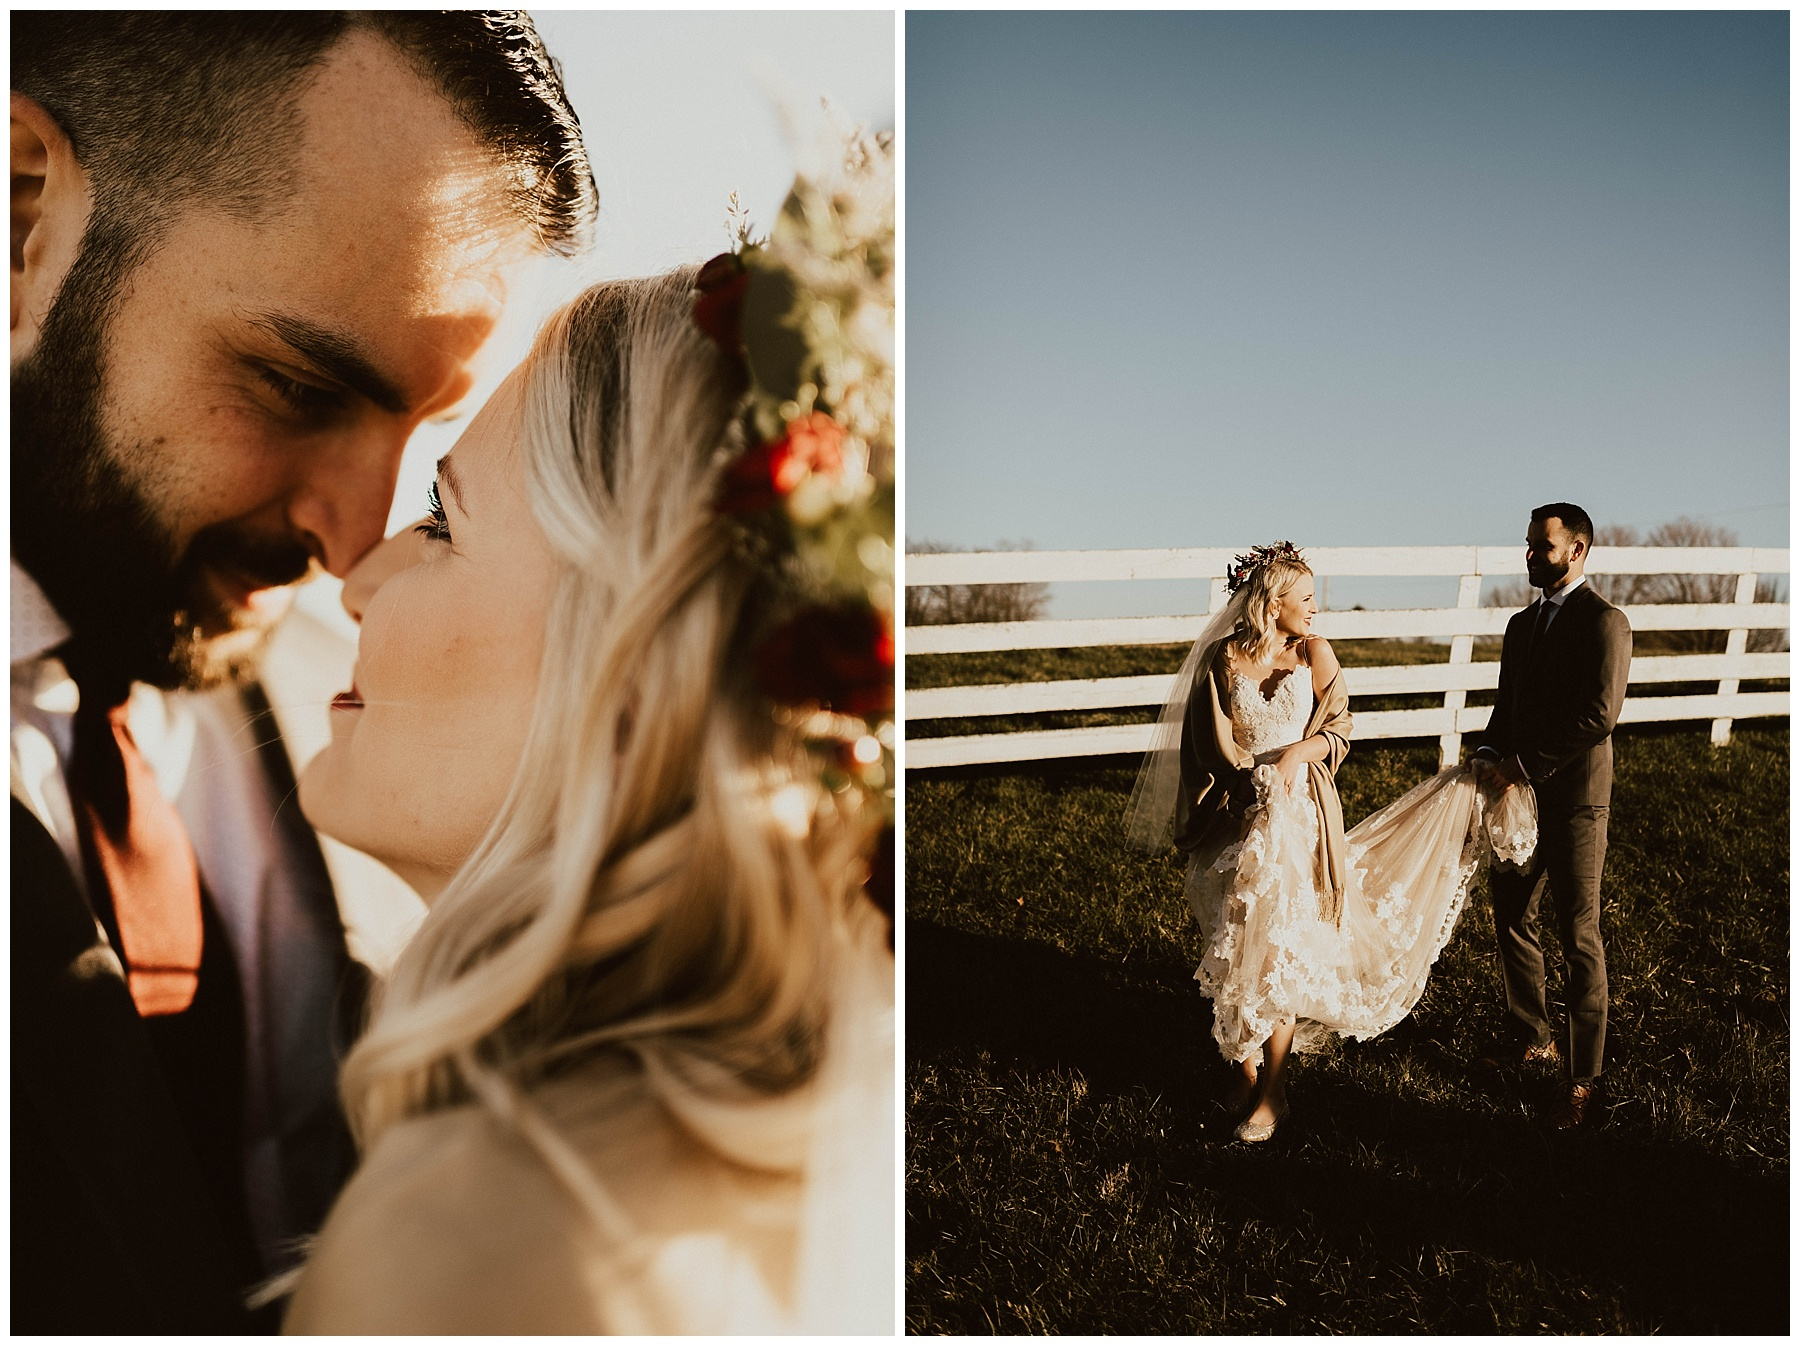 Hannah + Brian    Christmas Cabin Wedding – Lauren F.otography 4702a9cb5